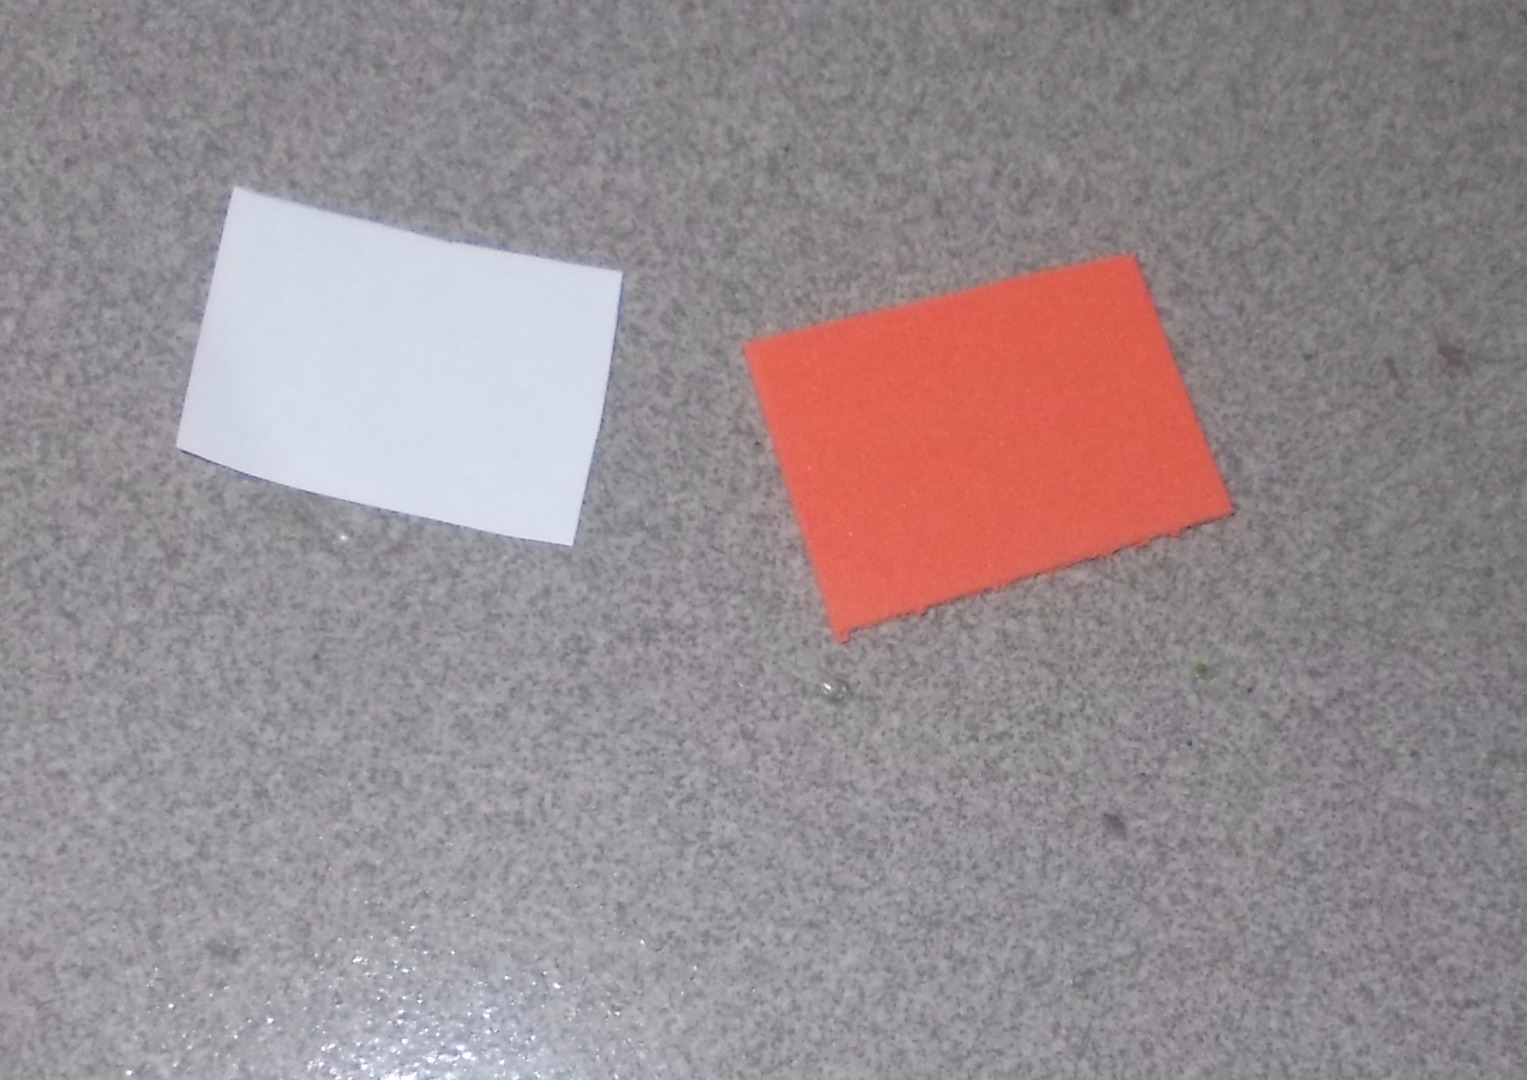 Picture of Cut the Orange Foam Rectangle to Roll Up Around the Pencil.